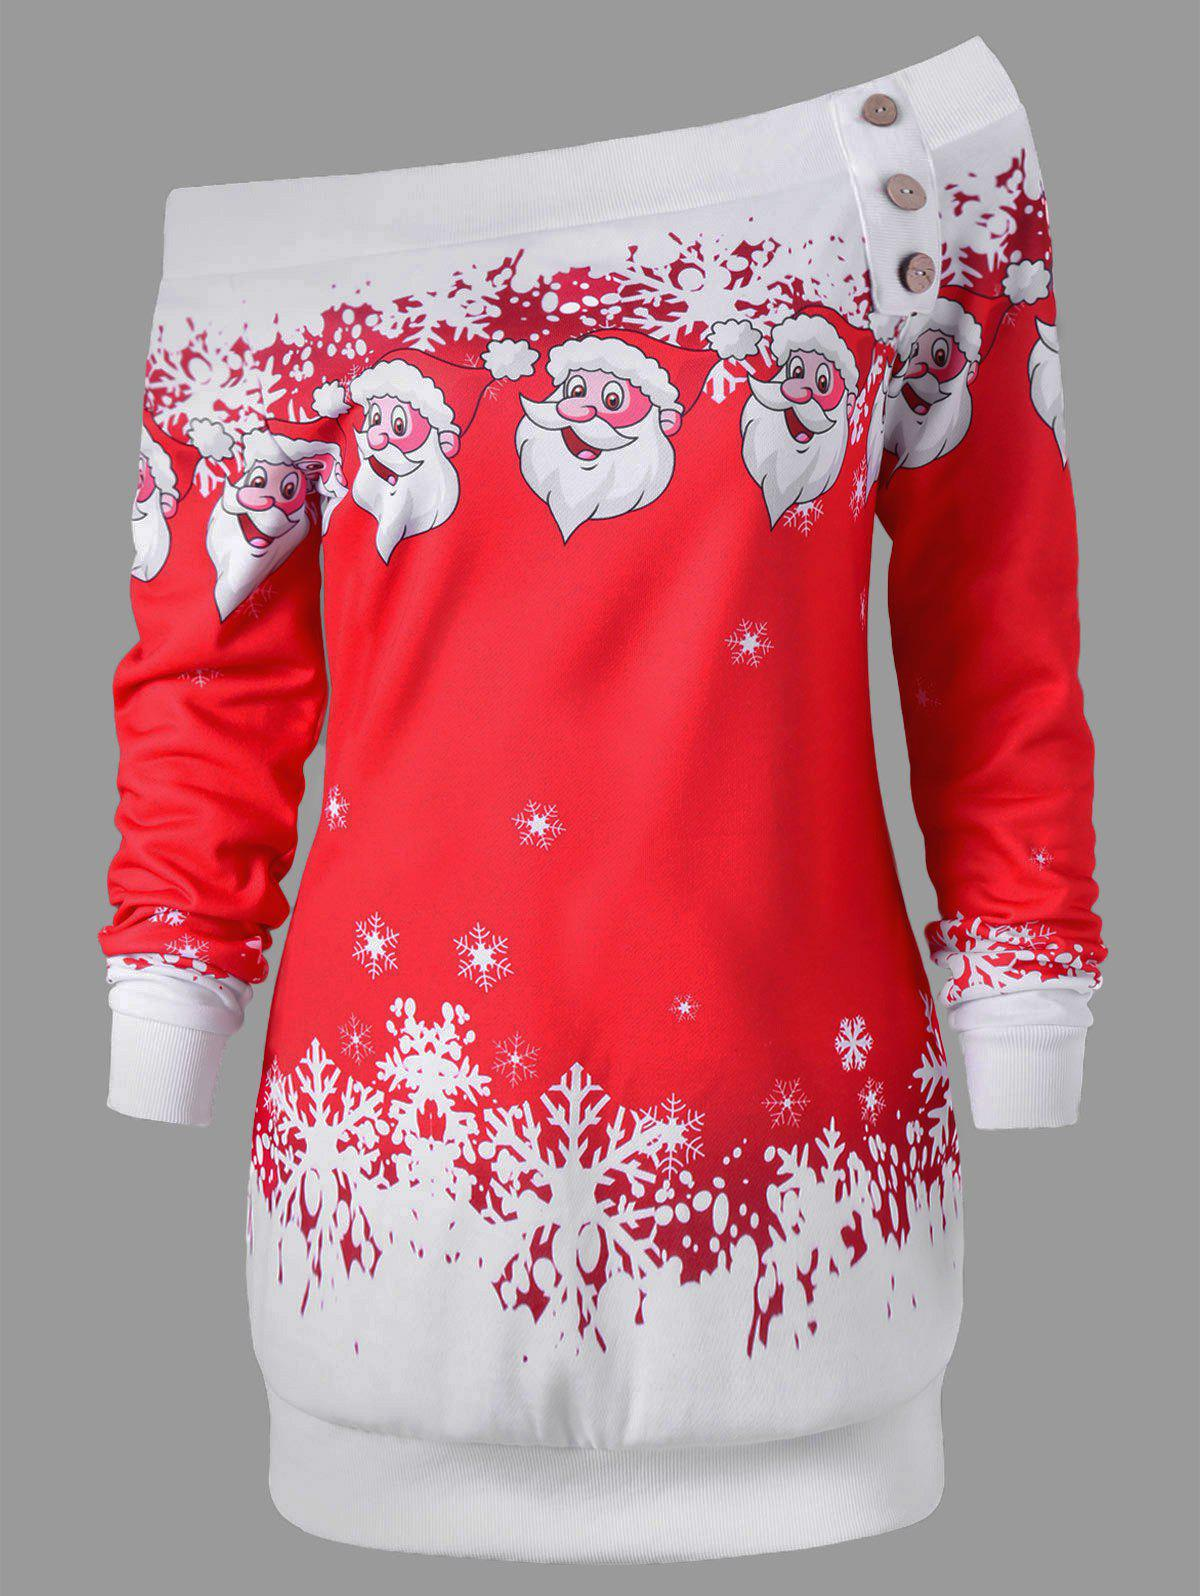 Pullover Santa Claus Snowflake Skew Neck Christmas SweatshirtWOMEN<br><br>Size: M; Color: RED; Material: Polyester,Spandex; Shirt Length: Long; Sleeve Length: Full; Style: Casual; Pattern Style: Character; Embellishment: Button; Season: Fall,Spring,Winter; Weight: 0.3000kg; Package Contents: 1 x Sweatshirt;